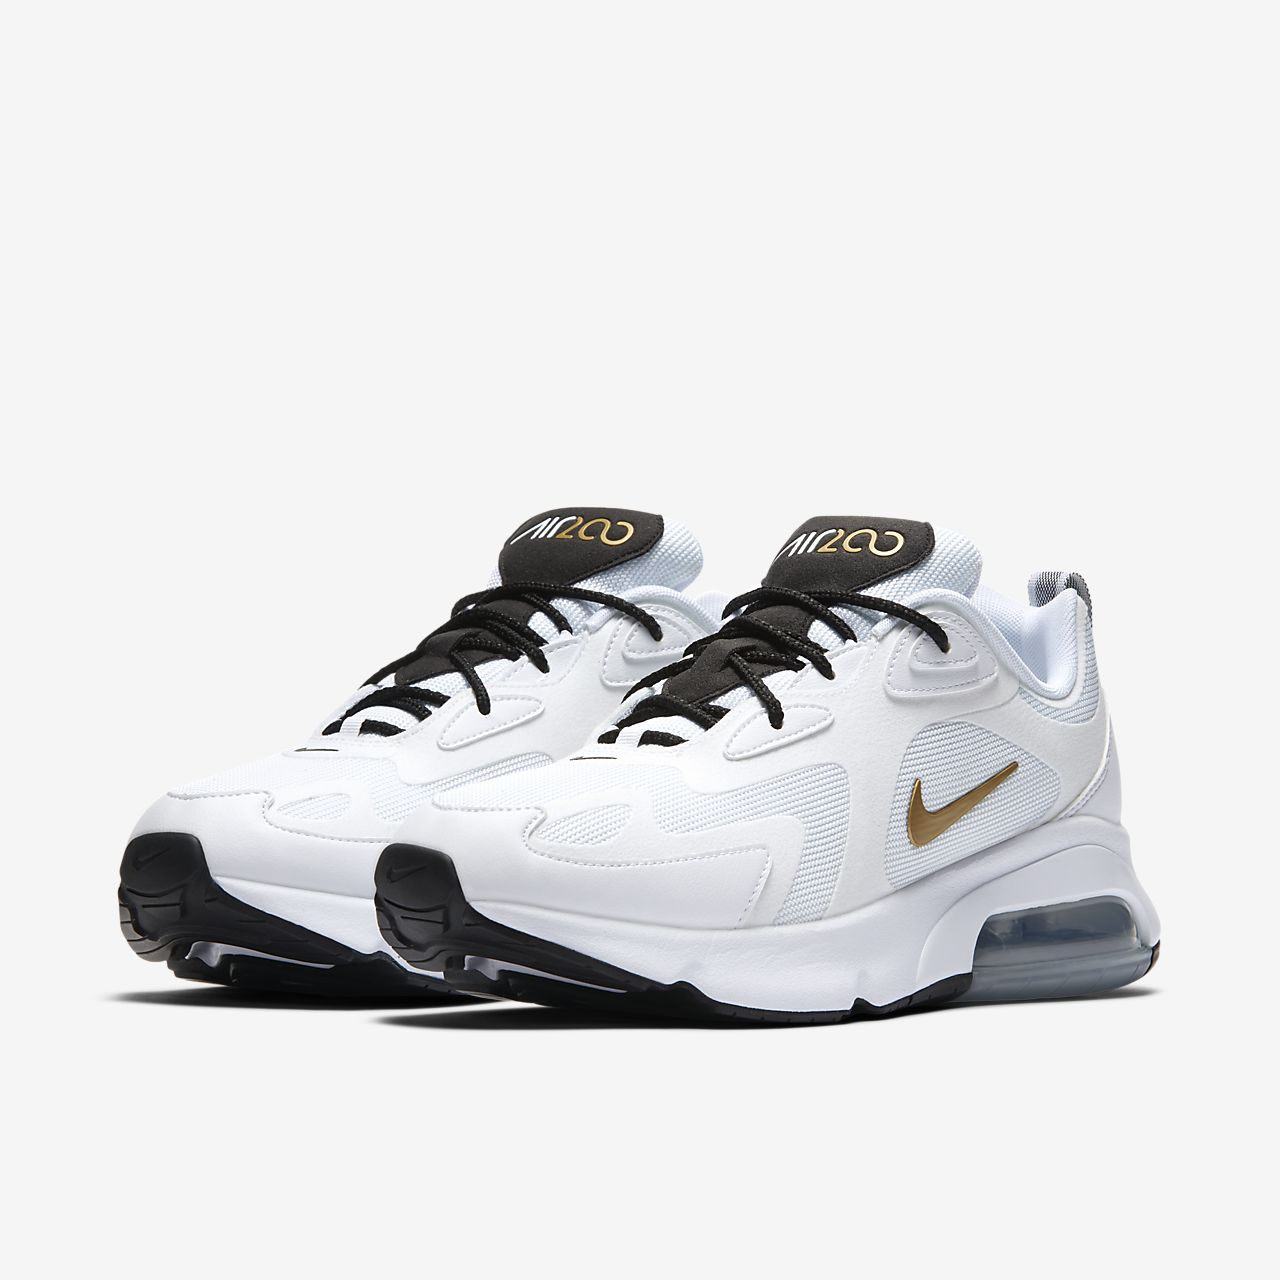 Max Chaussure Nike Homme 200 Pour Air BedCorx